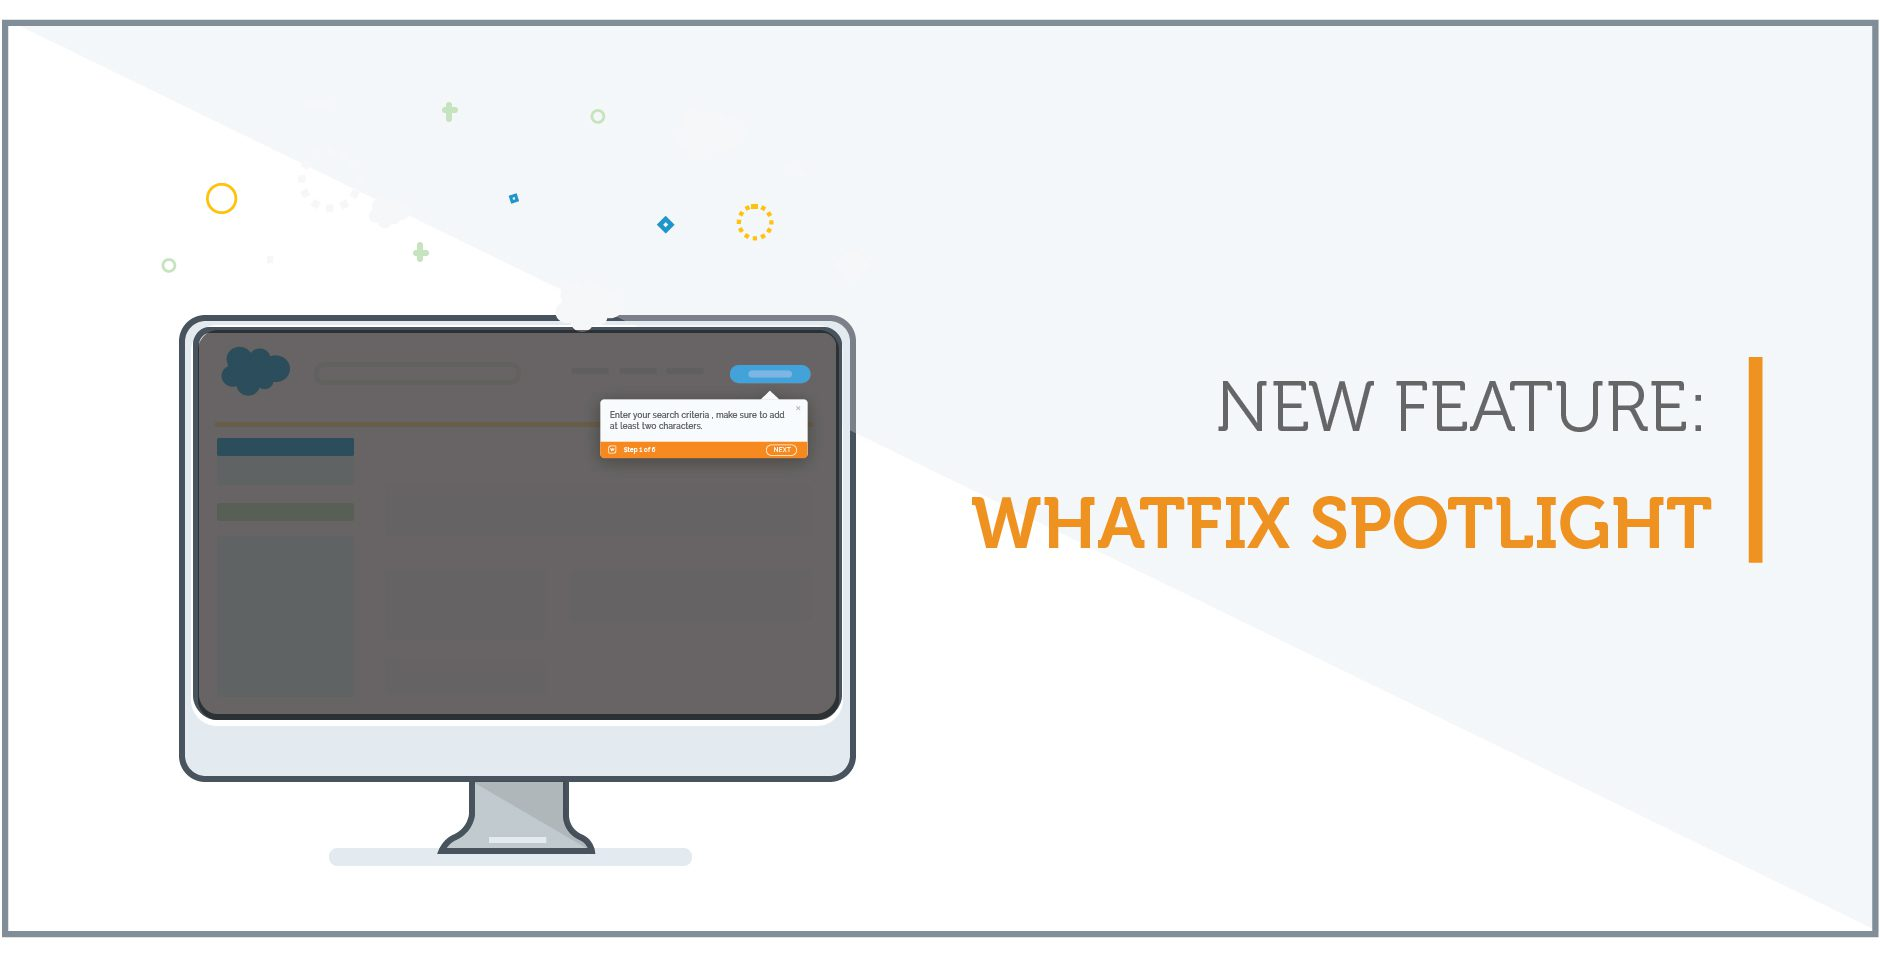 Whatfix Spotlight